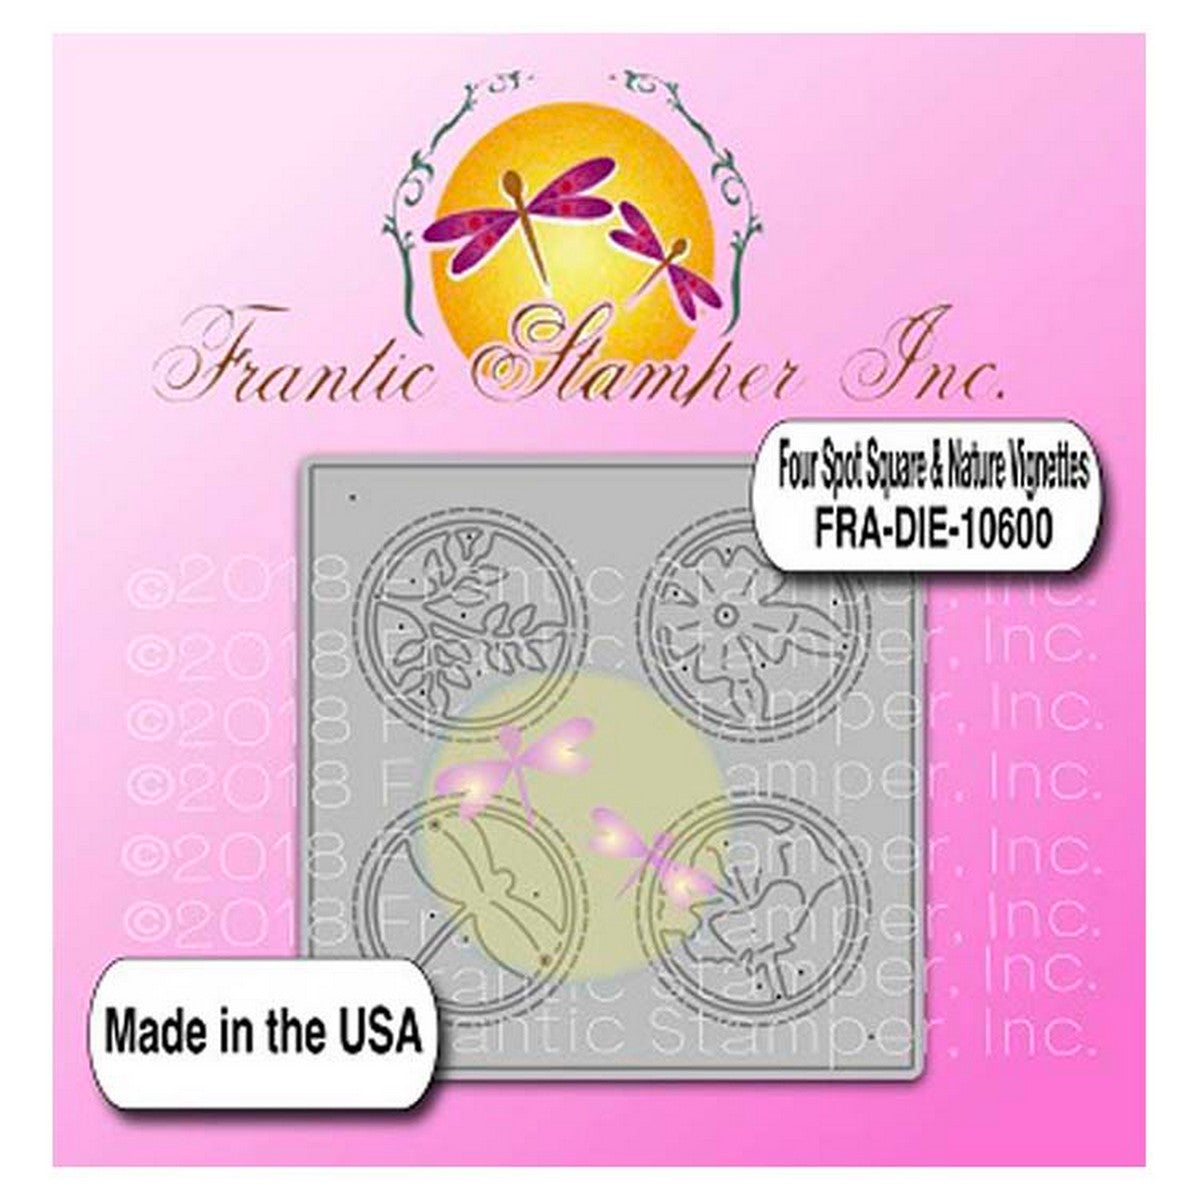 Frantic Stamper - Four Spot Square & Nature Vignettes